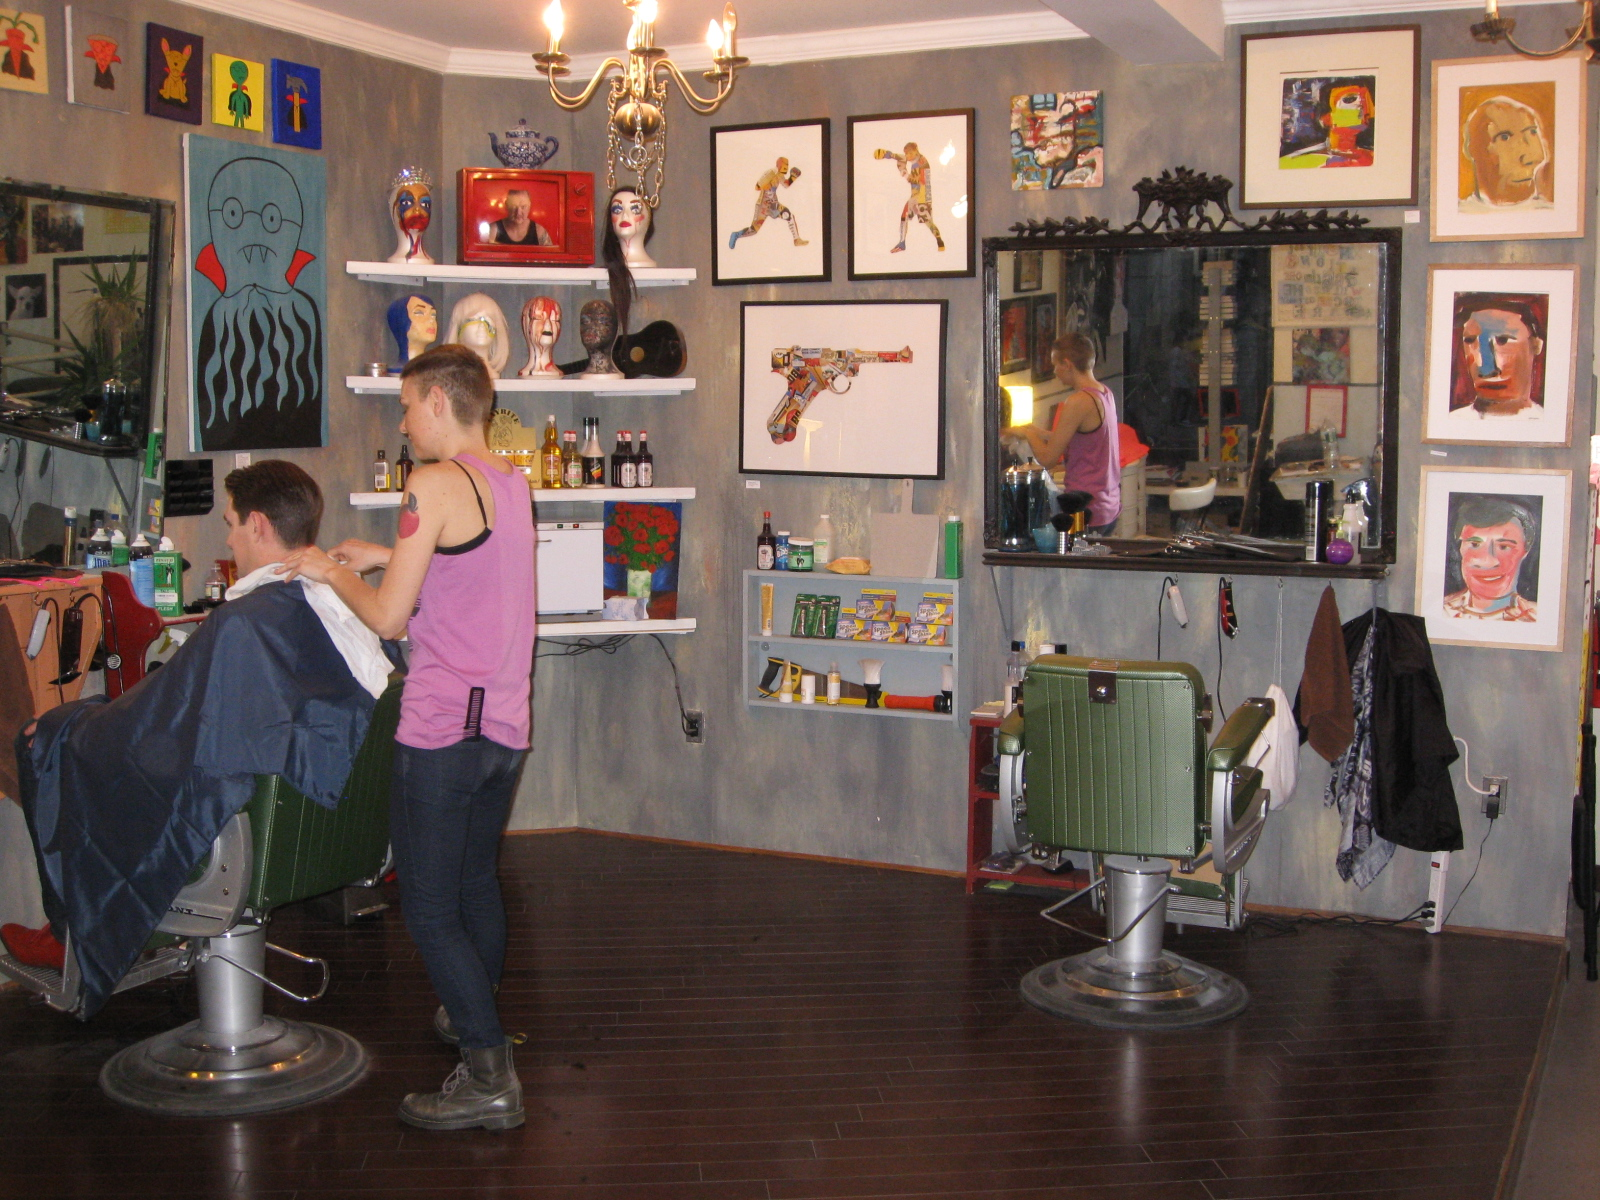 ... . Artwork from various artists adorn the walls of her barber shop